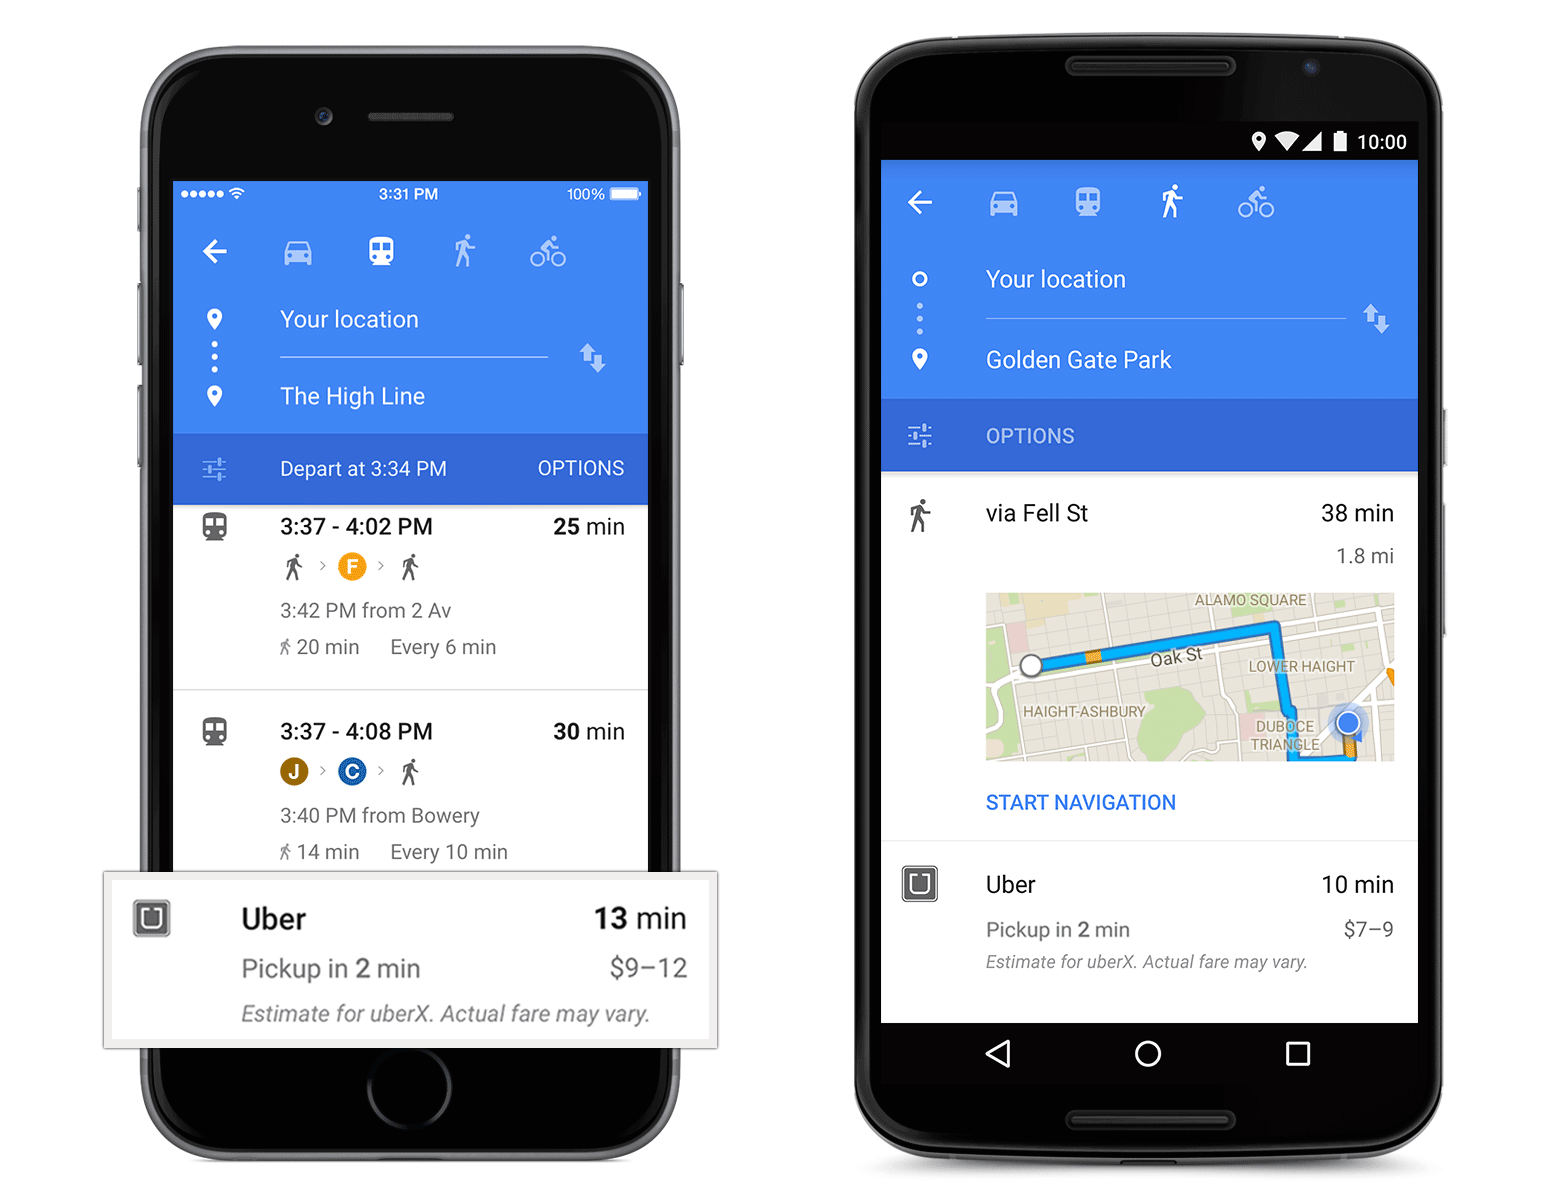 Uber card in Google Maps